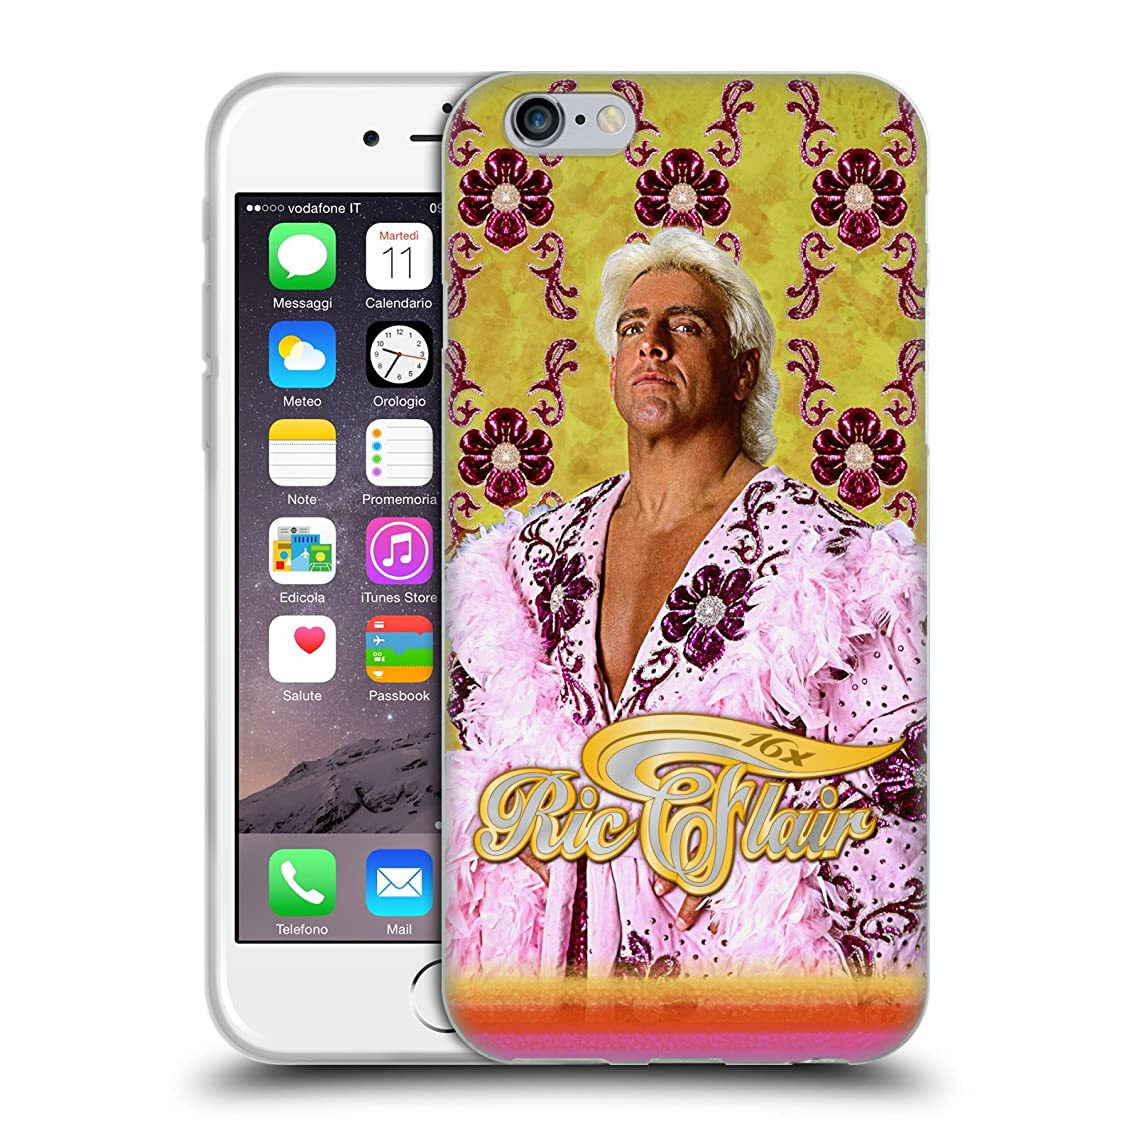 Official WWE Pink Robe RIC Flair Soft Gel Case for iPhone 6 / iPhone 6s